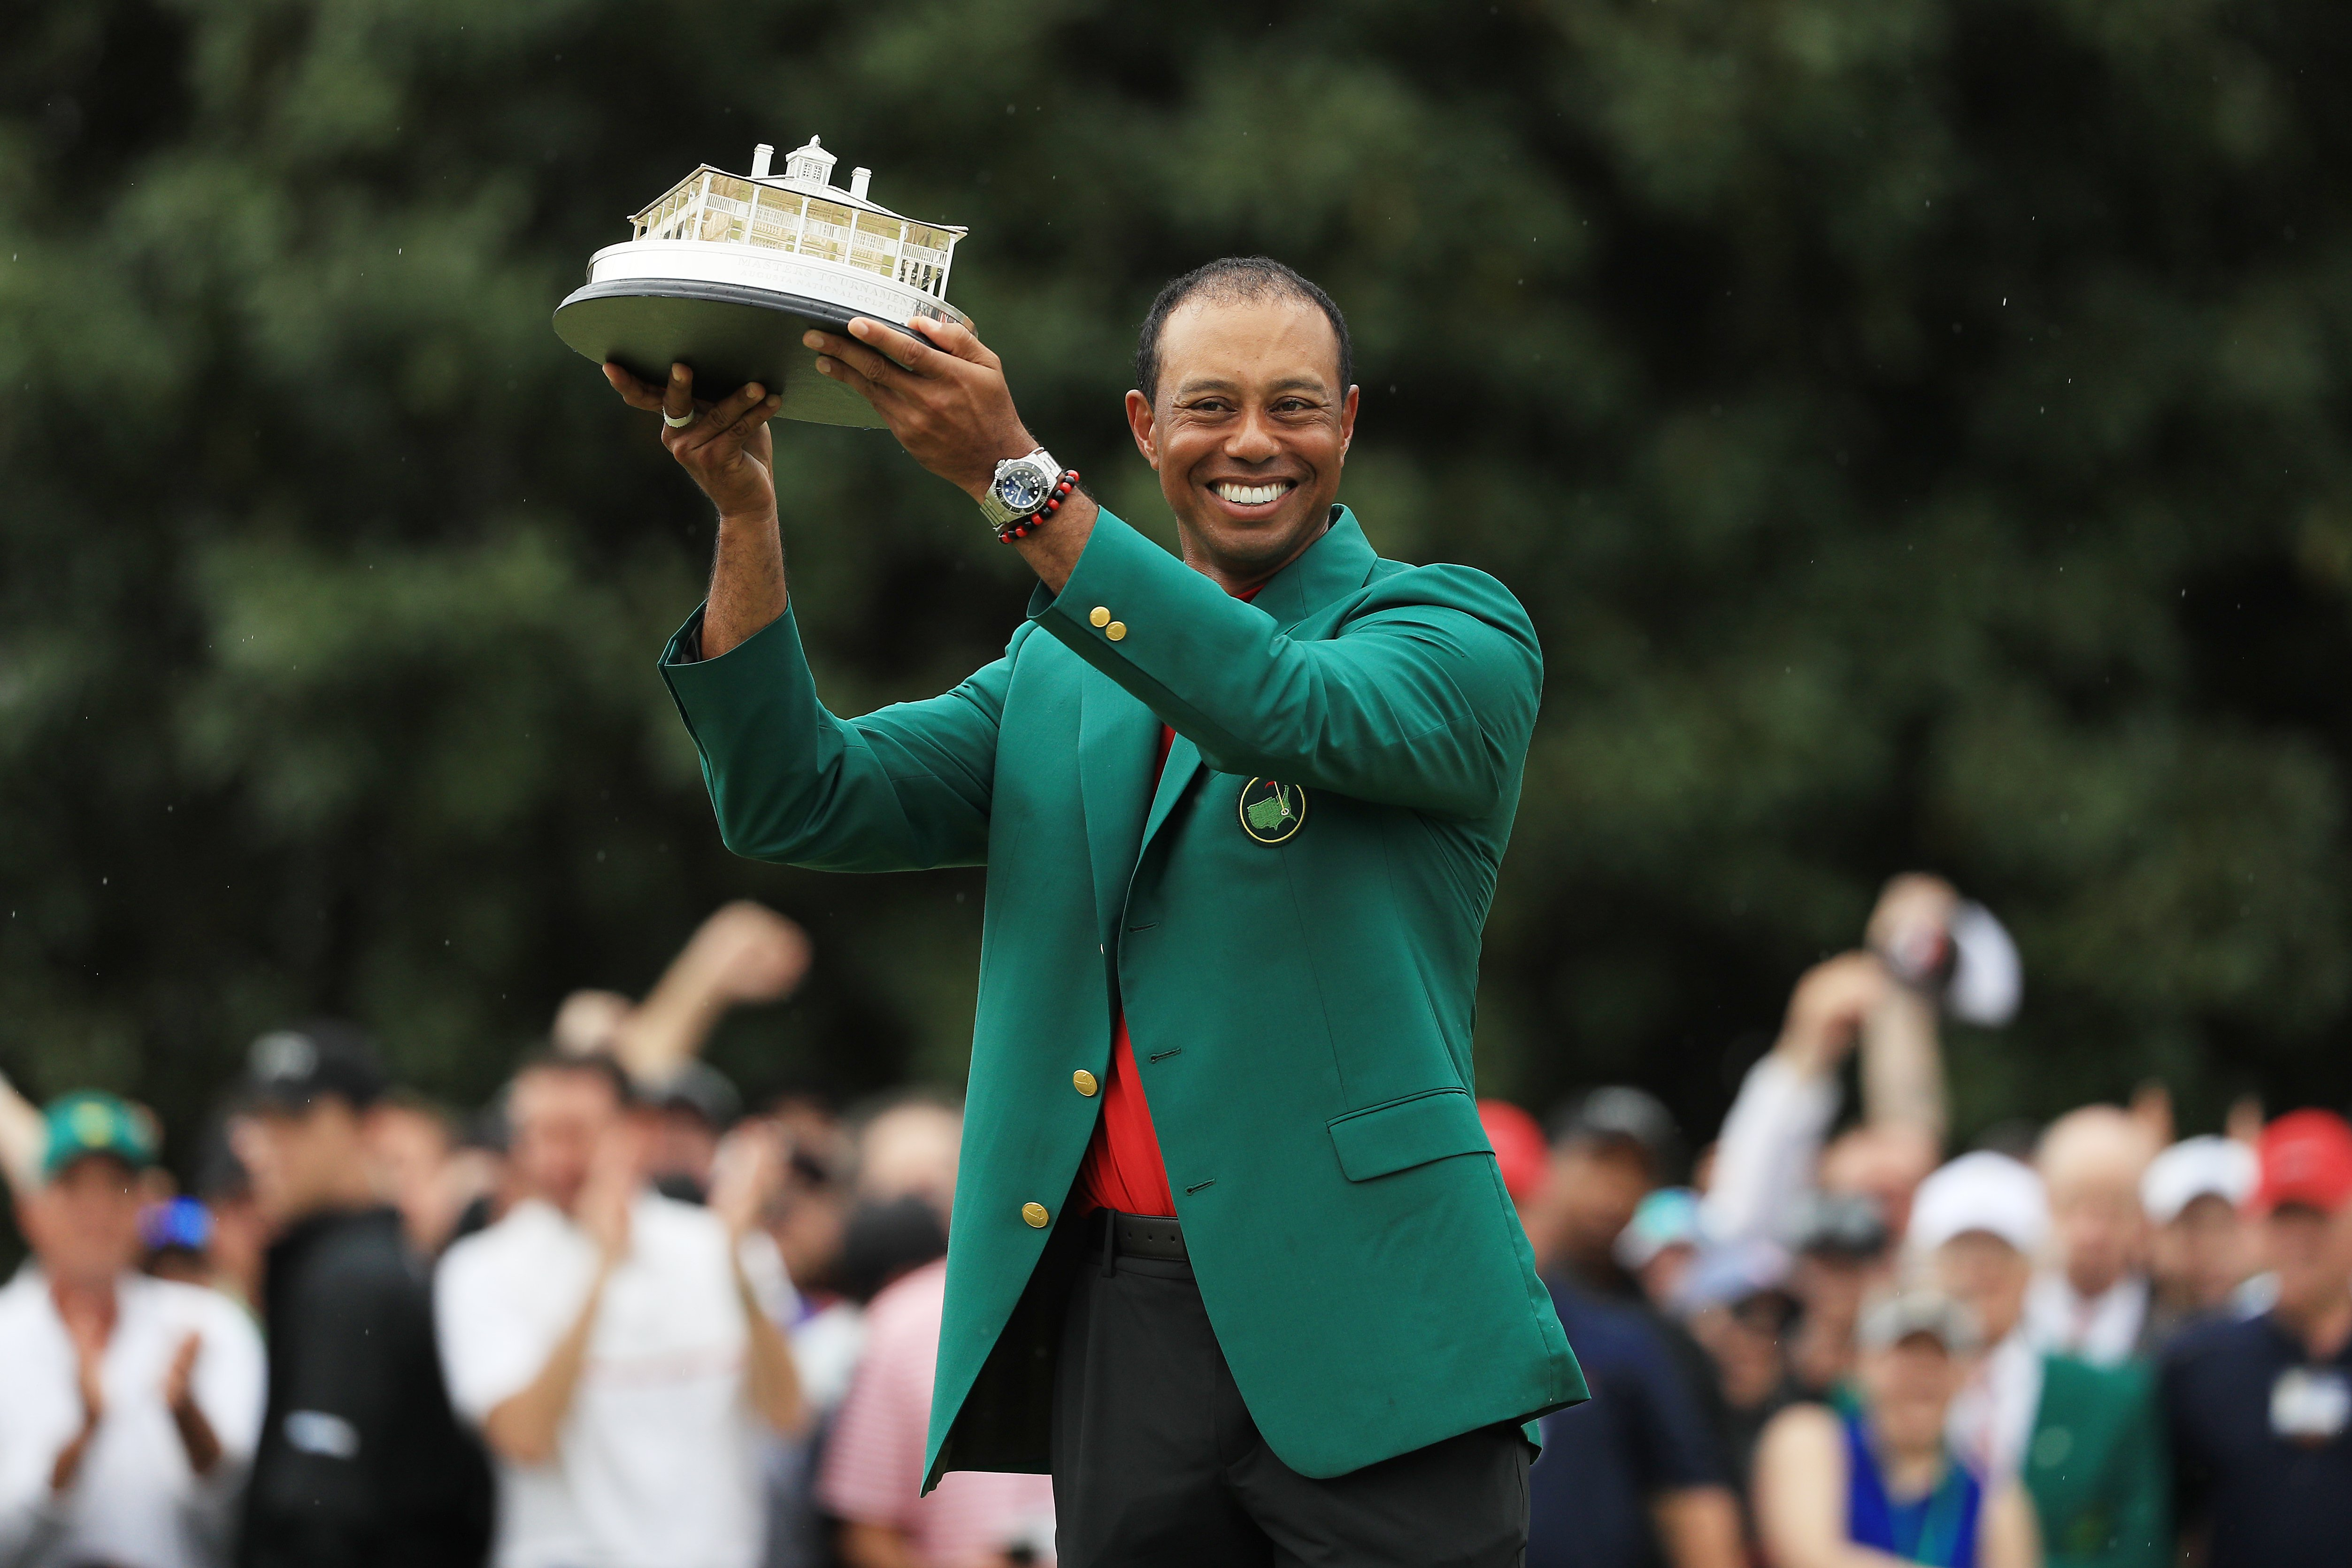 Tiger Woods after winning the Masters at Augusta National Golf Club on April 14, 2019. | Photo: GettyImages